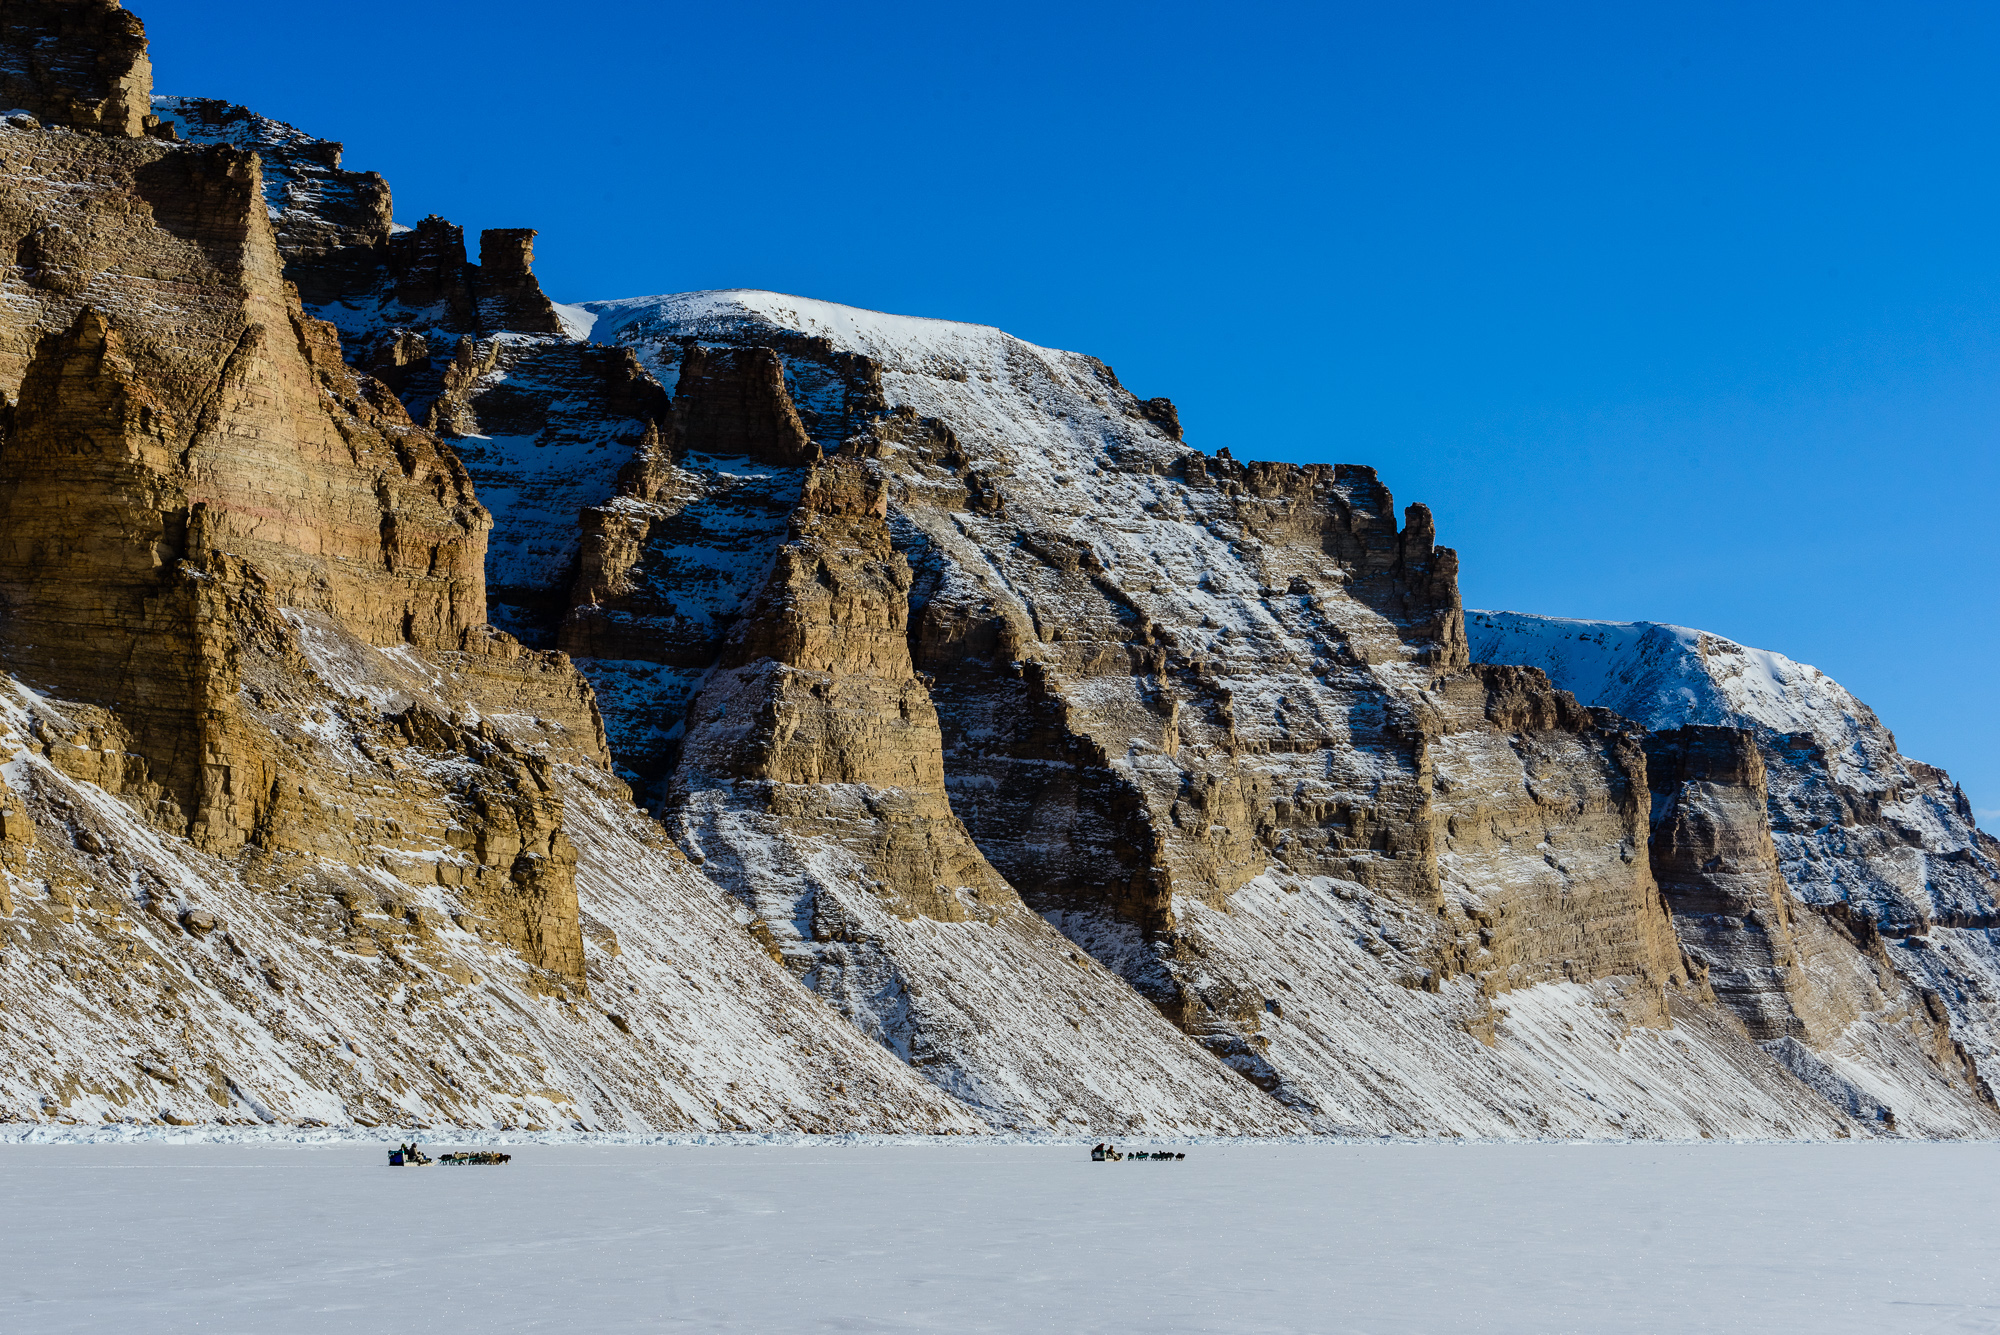 Inuit Dogsleds Travelling the Sea Ice Beneath Colorful Cliffs